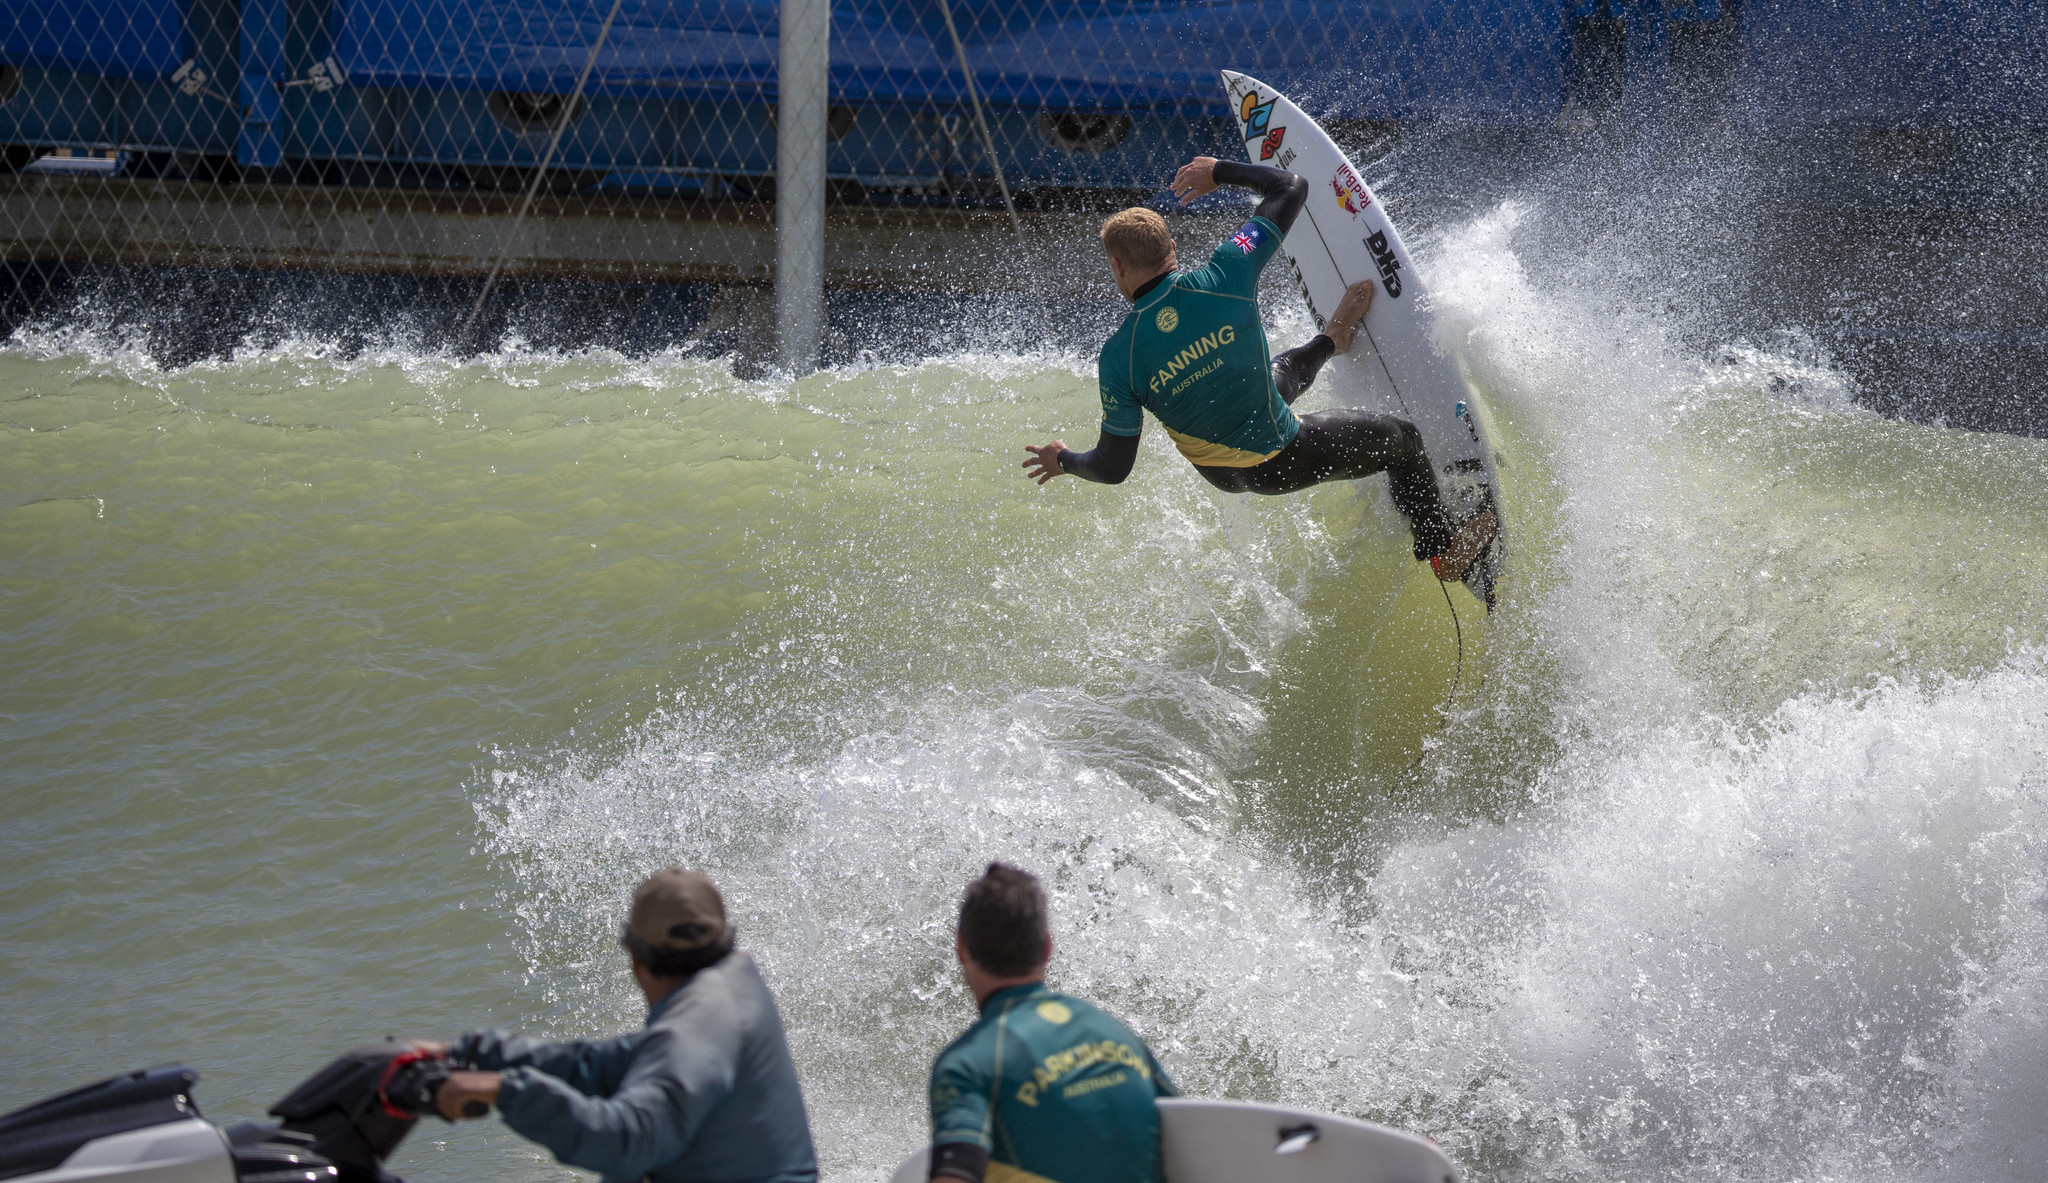 LEMOORE, CALIF. -- FRIDAY, MAY 4, 2018: Pro surfer Mick Fanning, of Australia, turns high off the to